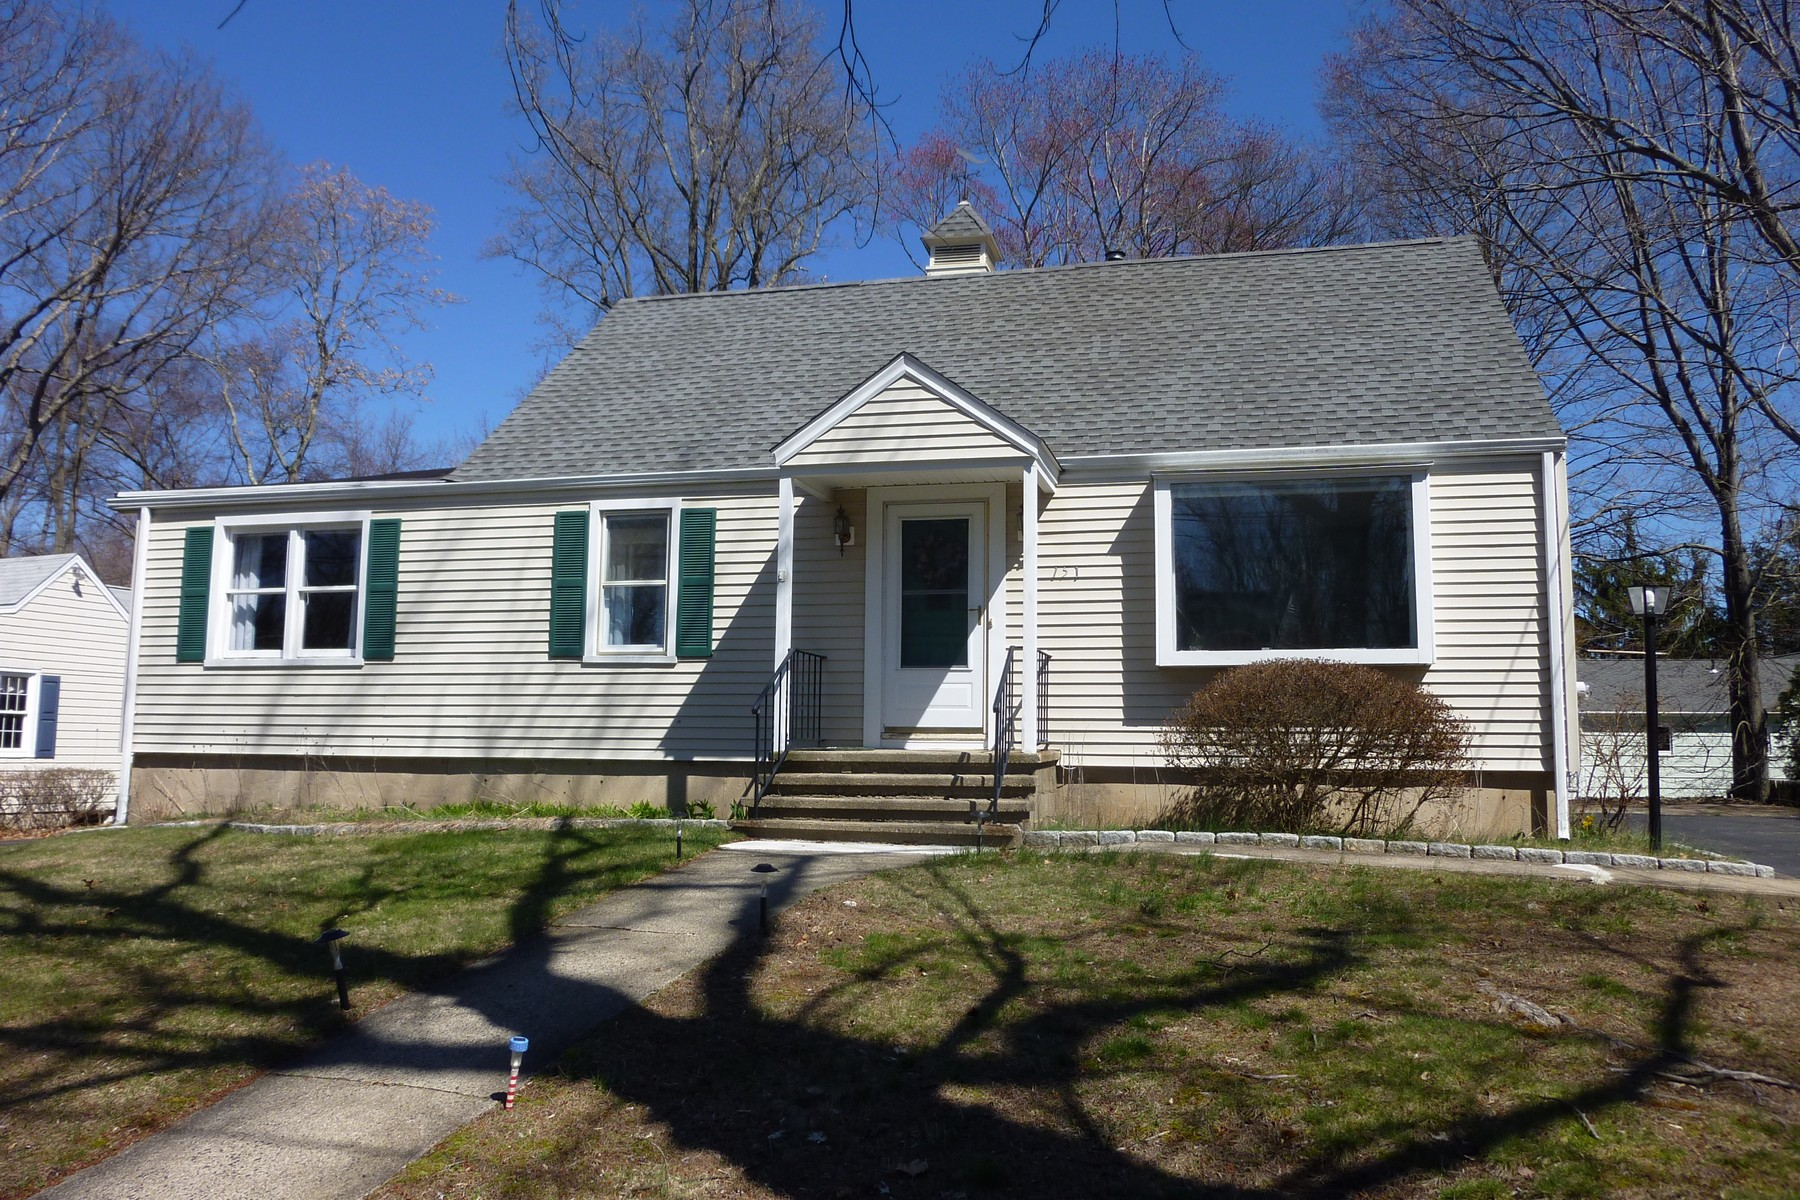 Single Family Home for Sale at VALLEY VIEW 151 Valleyview Road Fairfield, Connecticut, 06824 United States